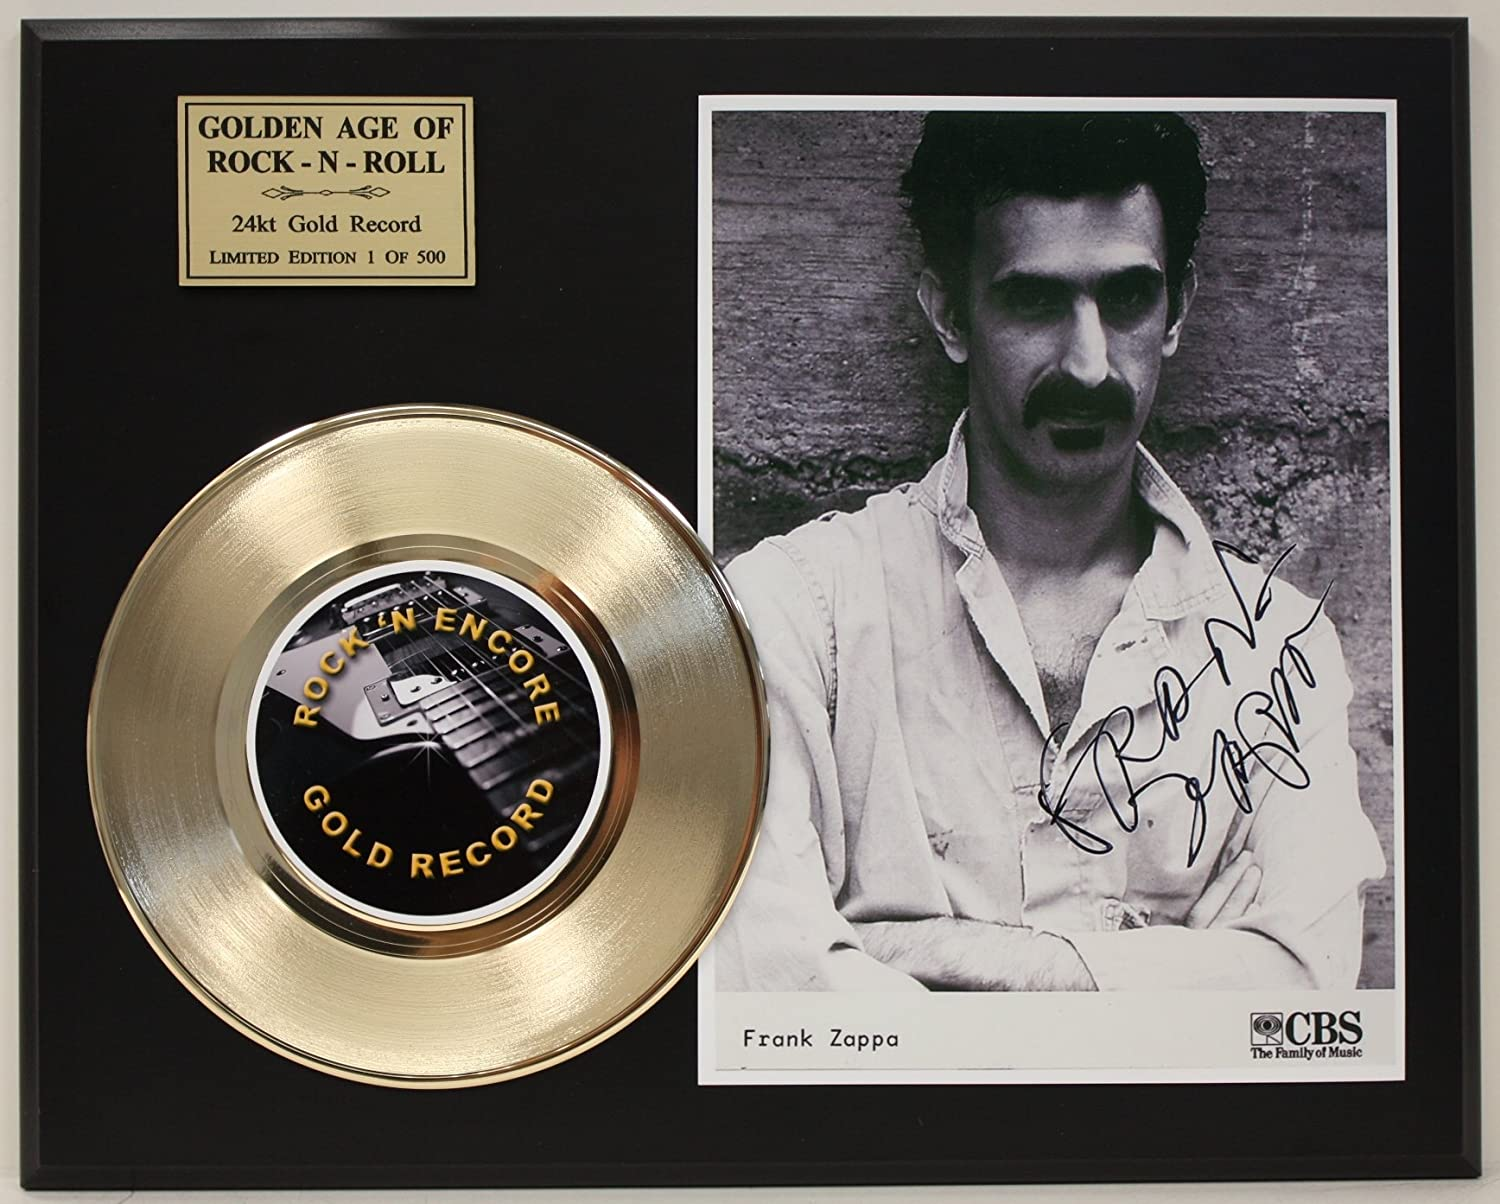 Frank Zappa Gold Record Signature Series LTD Edition Display